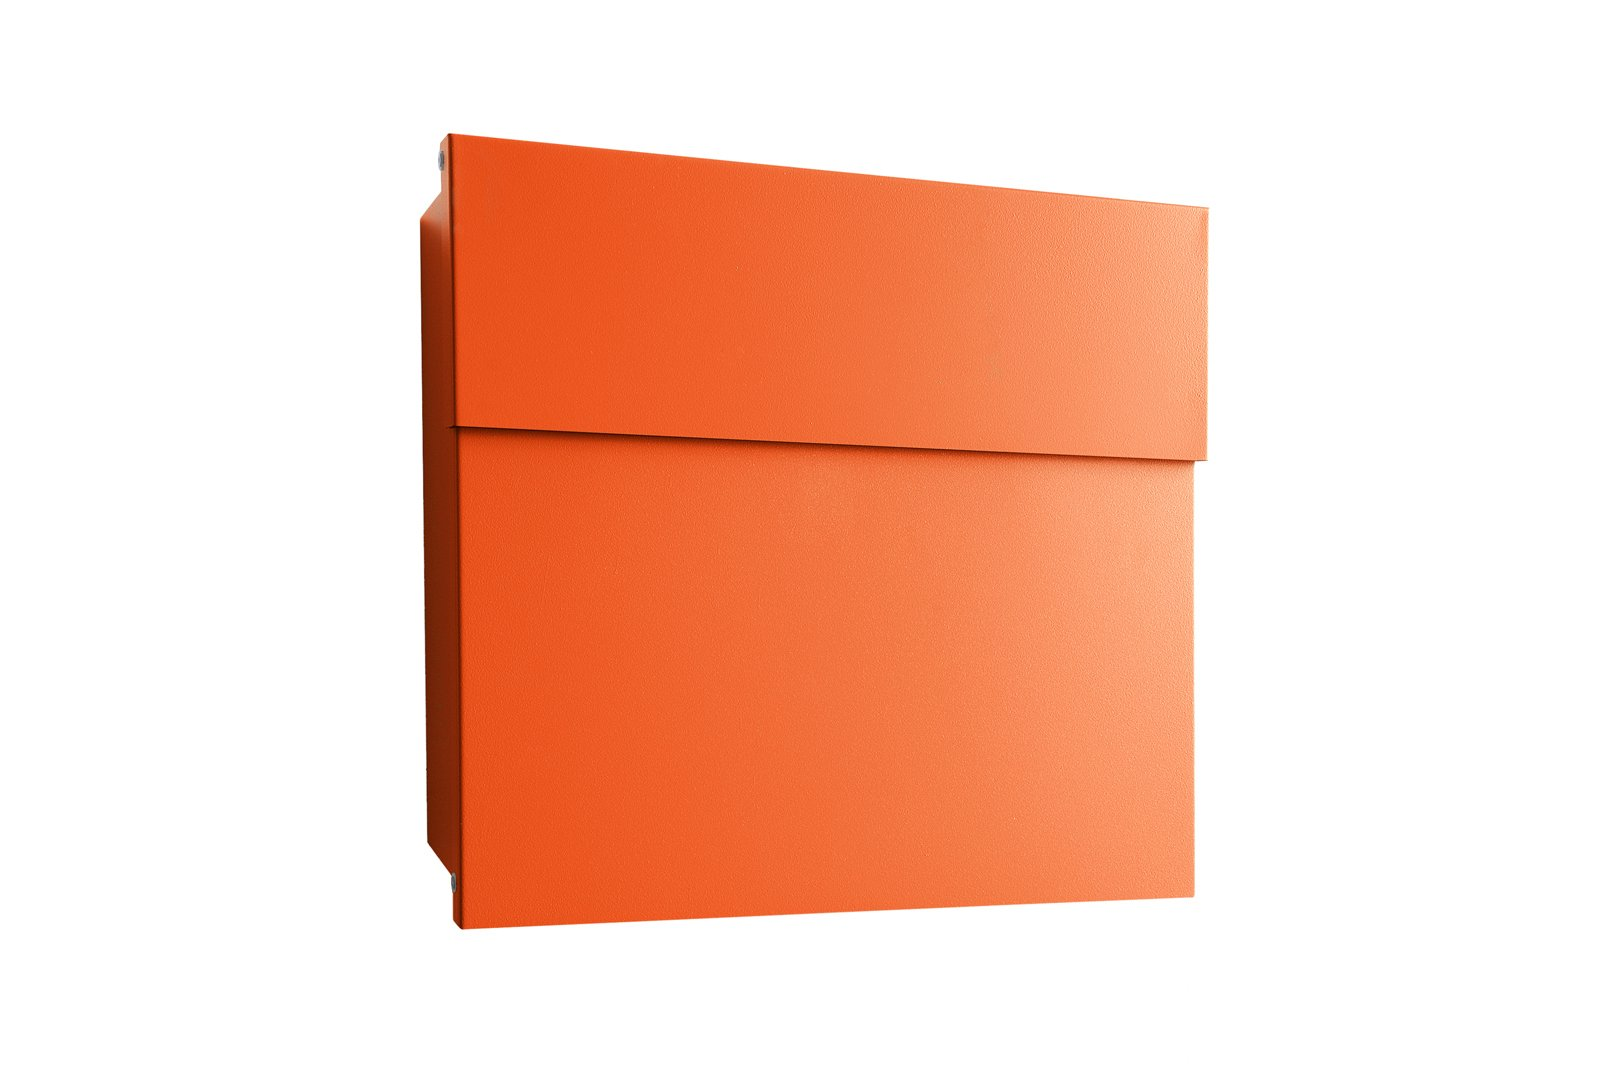 Letterman IV in orange by Michael Rösing for Radius-Design, $225 (without post)-This best-selling model is made to meet the deutsche post standards, but we bet it would be equally suitable on this side of the pond. 8 Best Modern Mailboxes to Buy - Photo 1 of 6